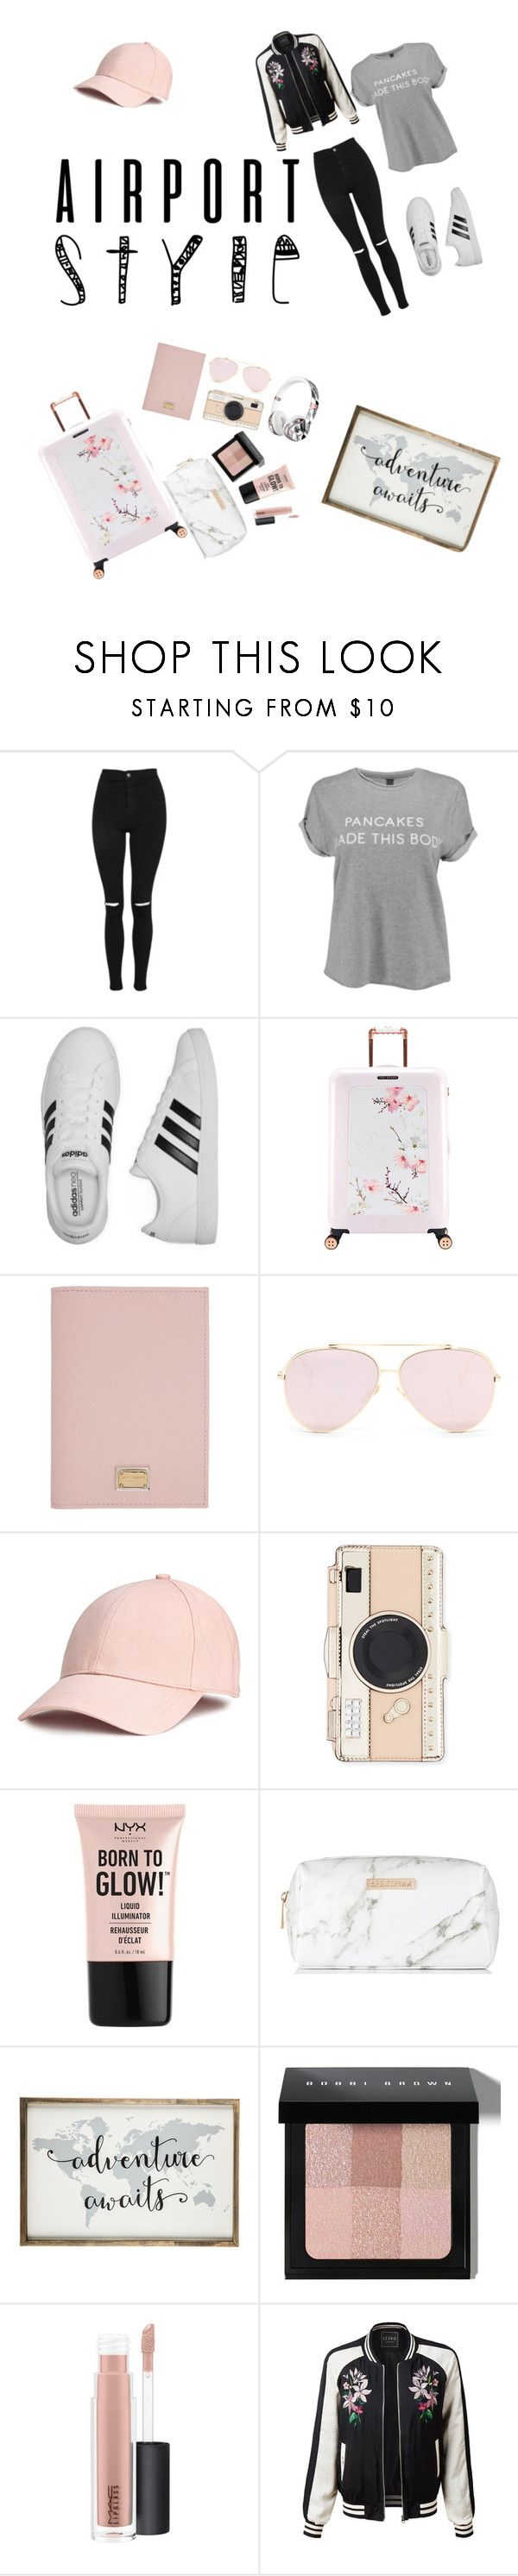 """Untitled #32"" by valeriewong1234 ❤ liked on Polyvore featuring Topshop, adidas, Ted Baker, Dolce&Gabbana, Beats by Dr. Dre, Kate Spade, NYX, Spectrum, Bobbi Brown Cosmetics and MAC Cosmetics"